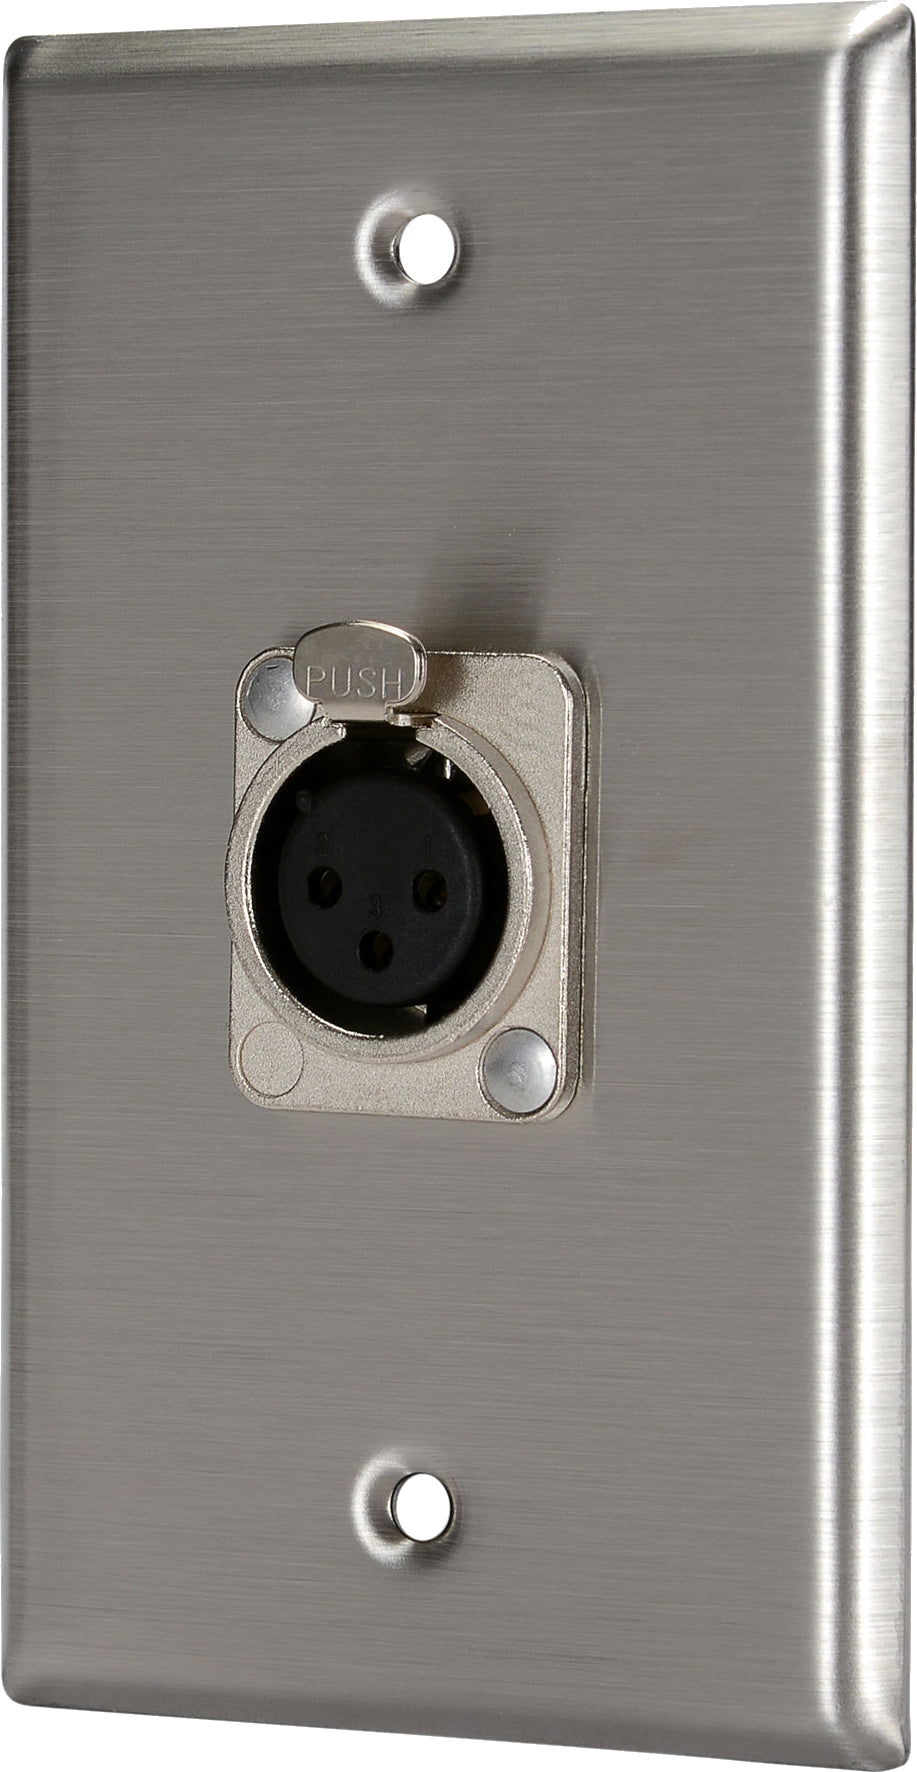 07-6072-11 Stainless Steel Wall Plate with 1*XLR Female